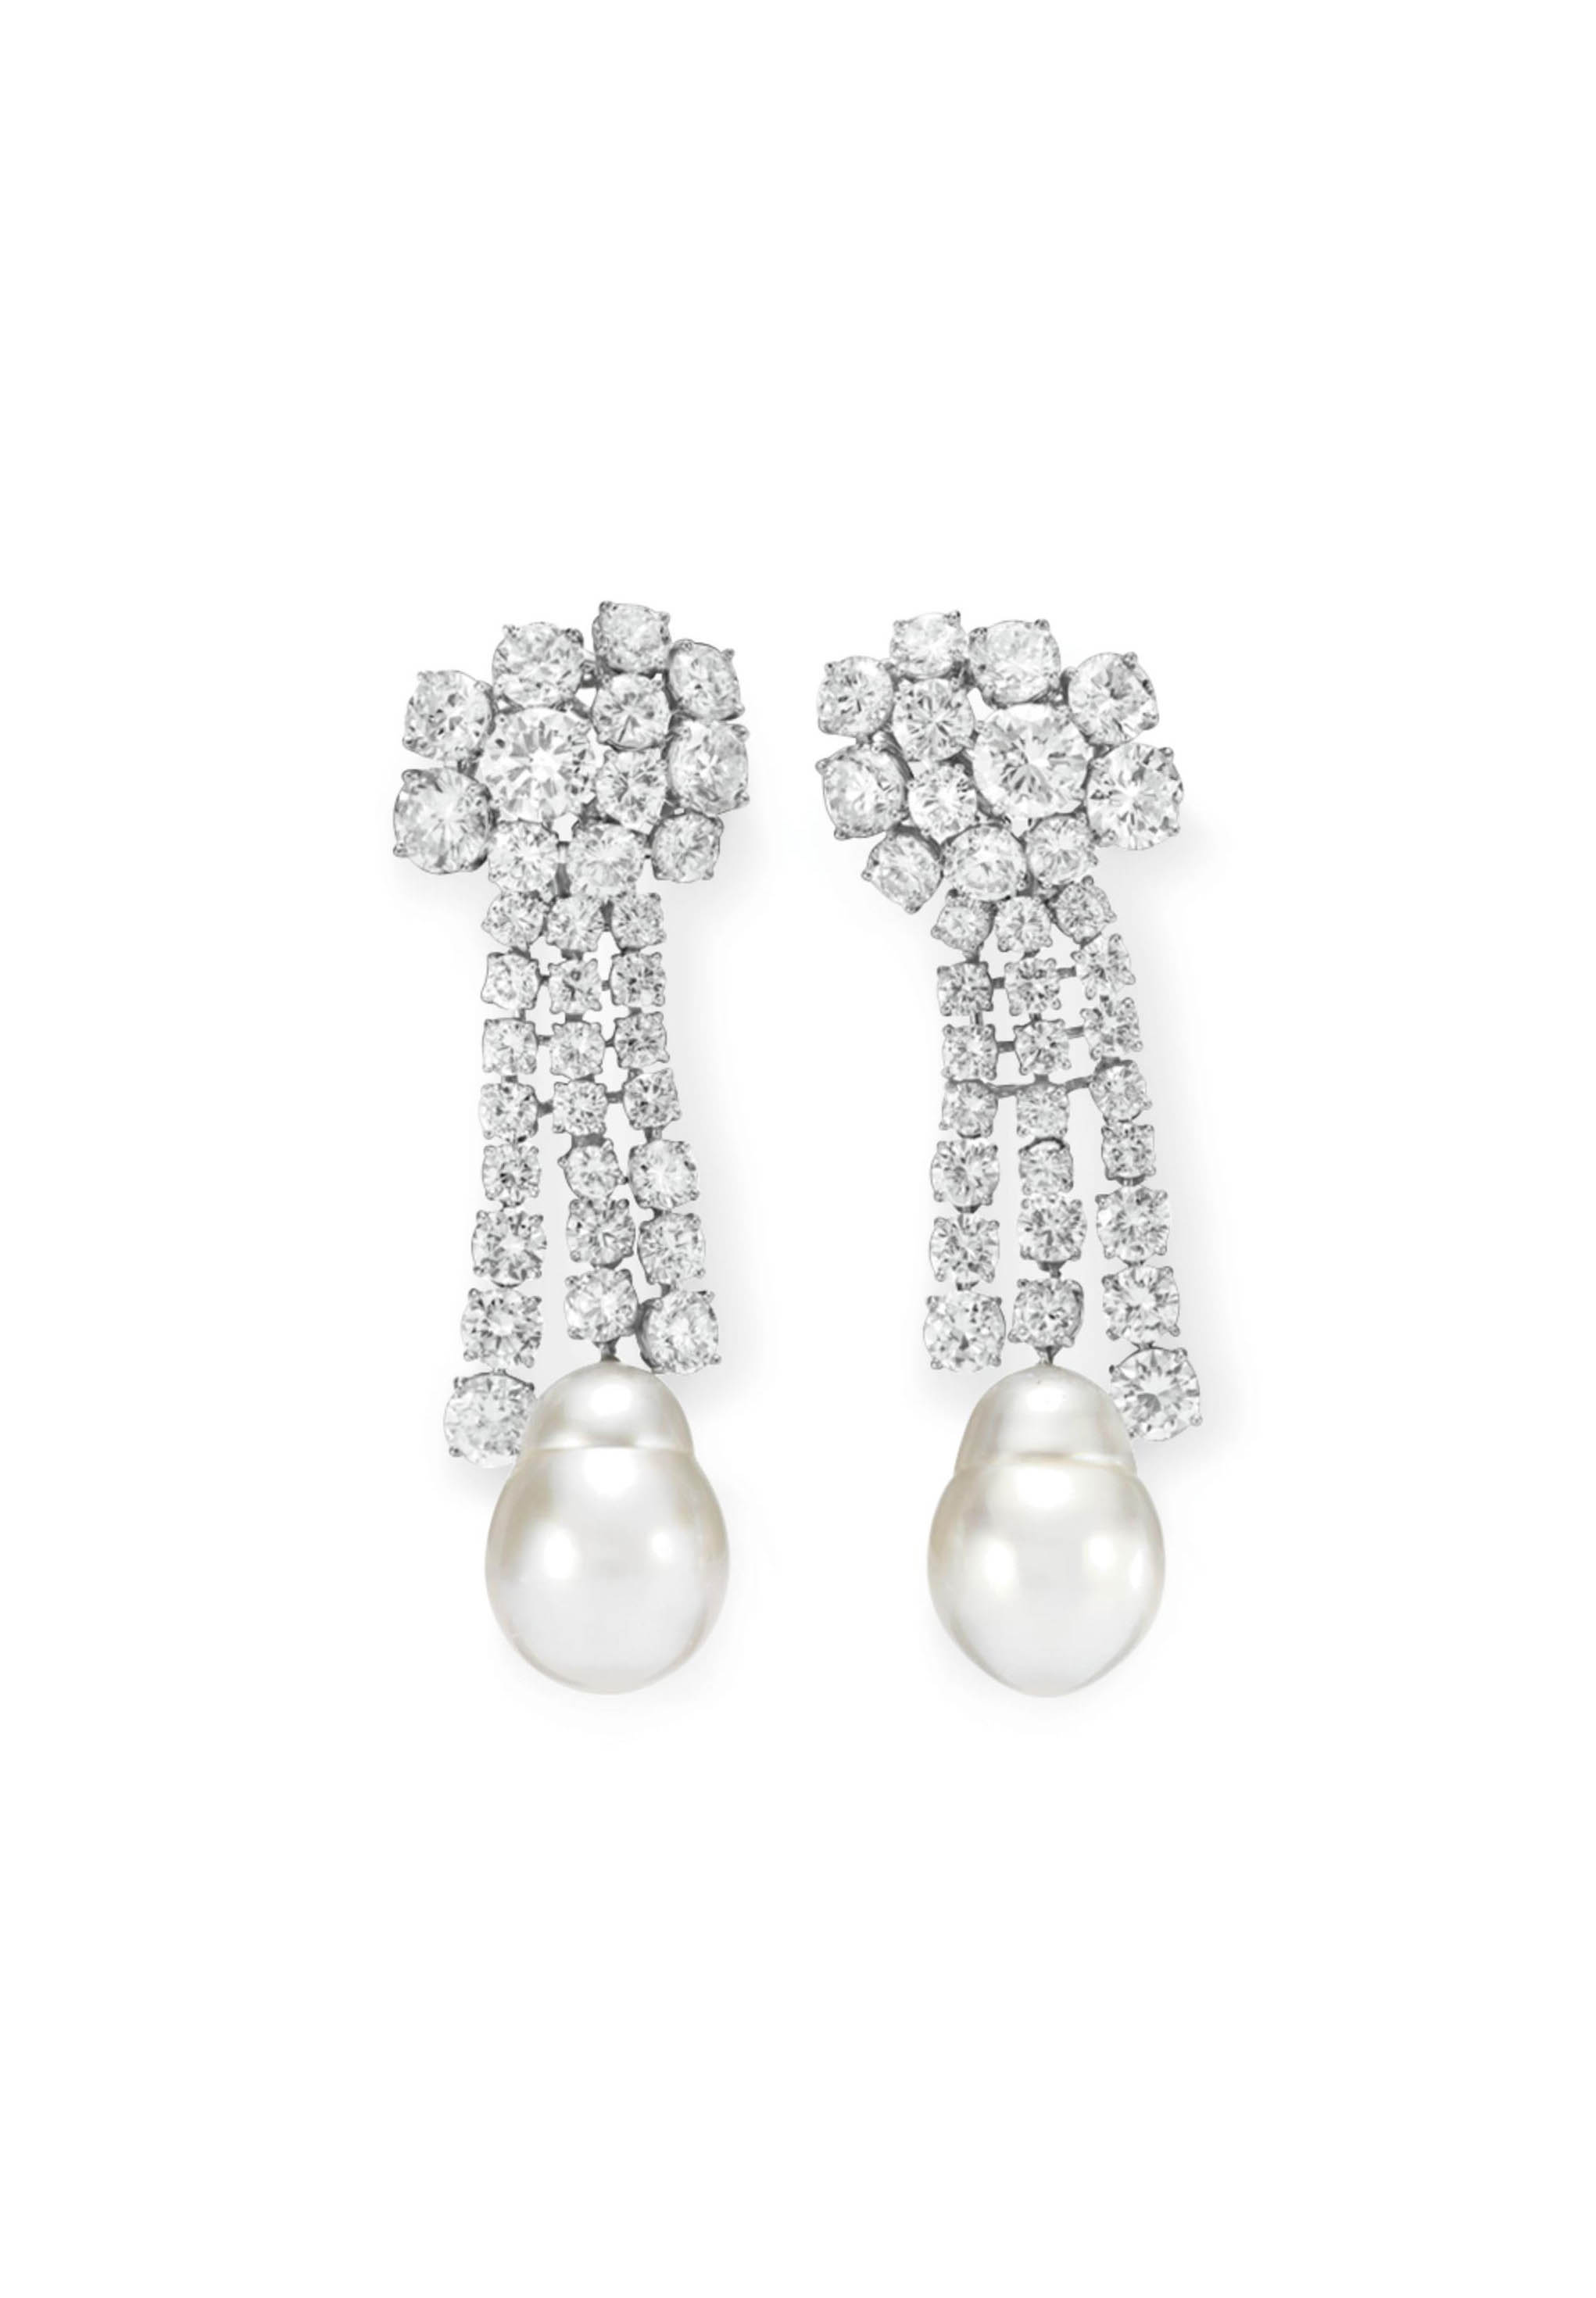 A PAIR OF DIAMOND AND CULTURED PEARL EAR PENDANTS, BY RUSER